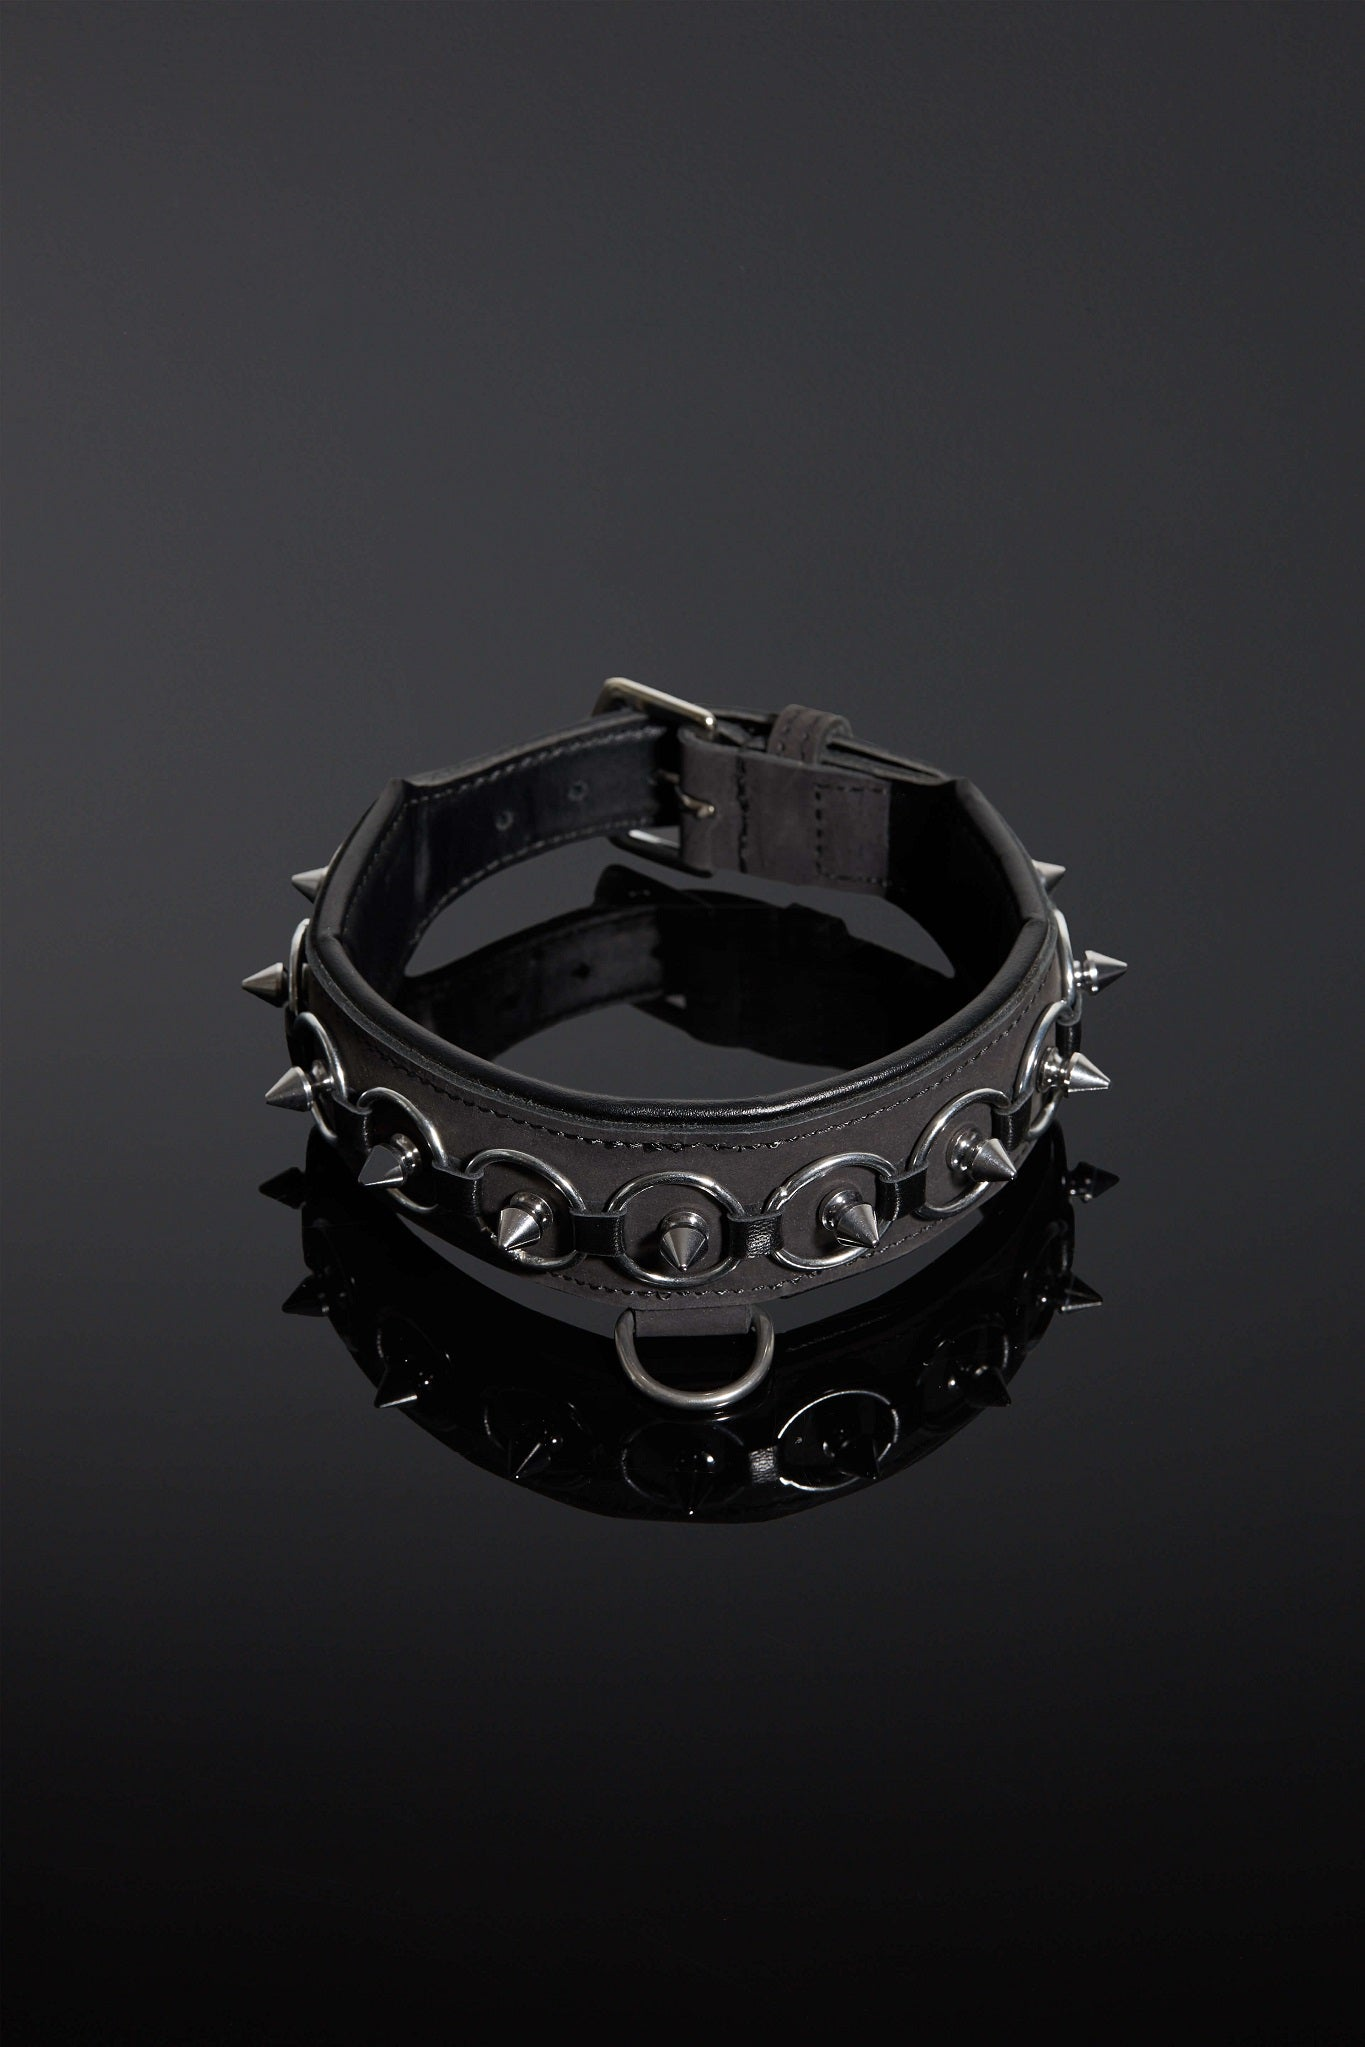 House of SXN Servus Leather BDSM Slave Collar